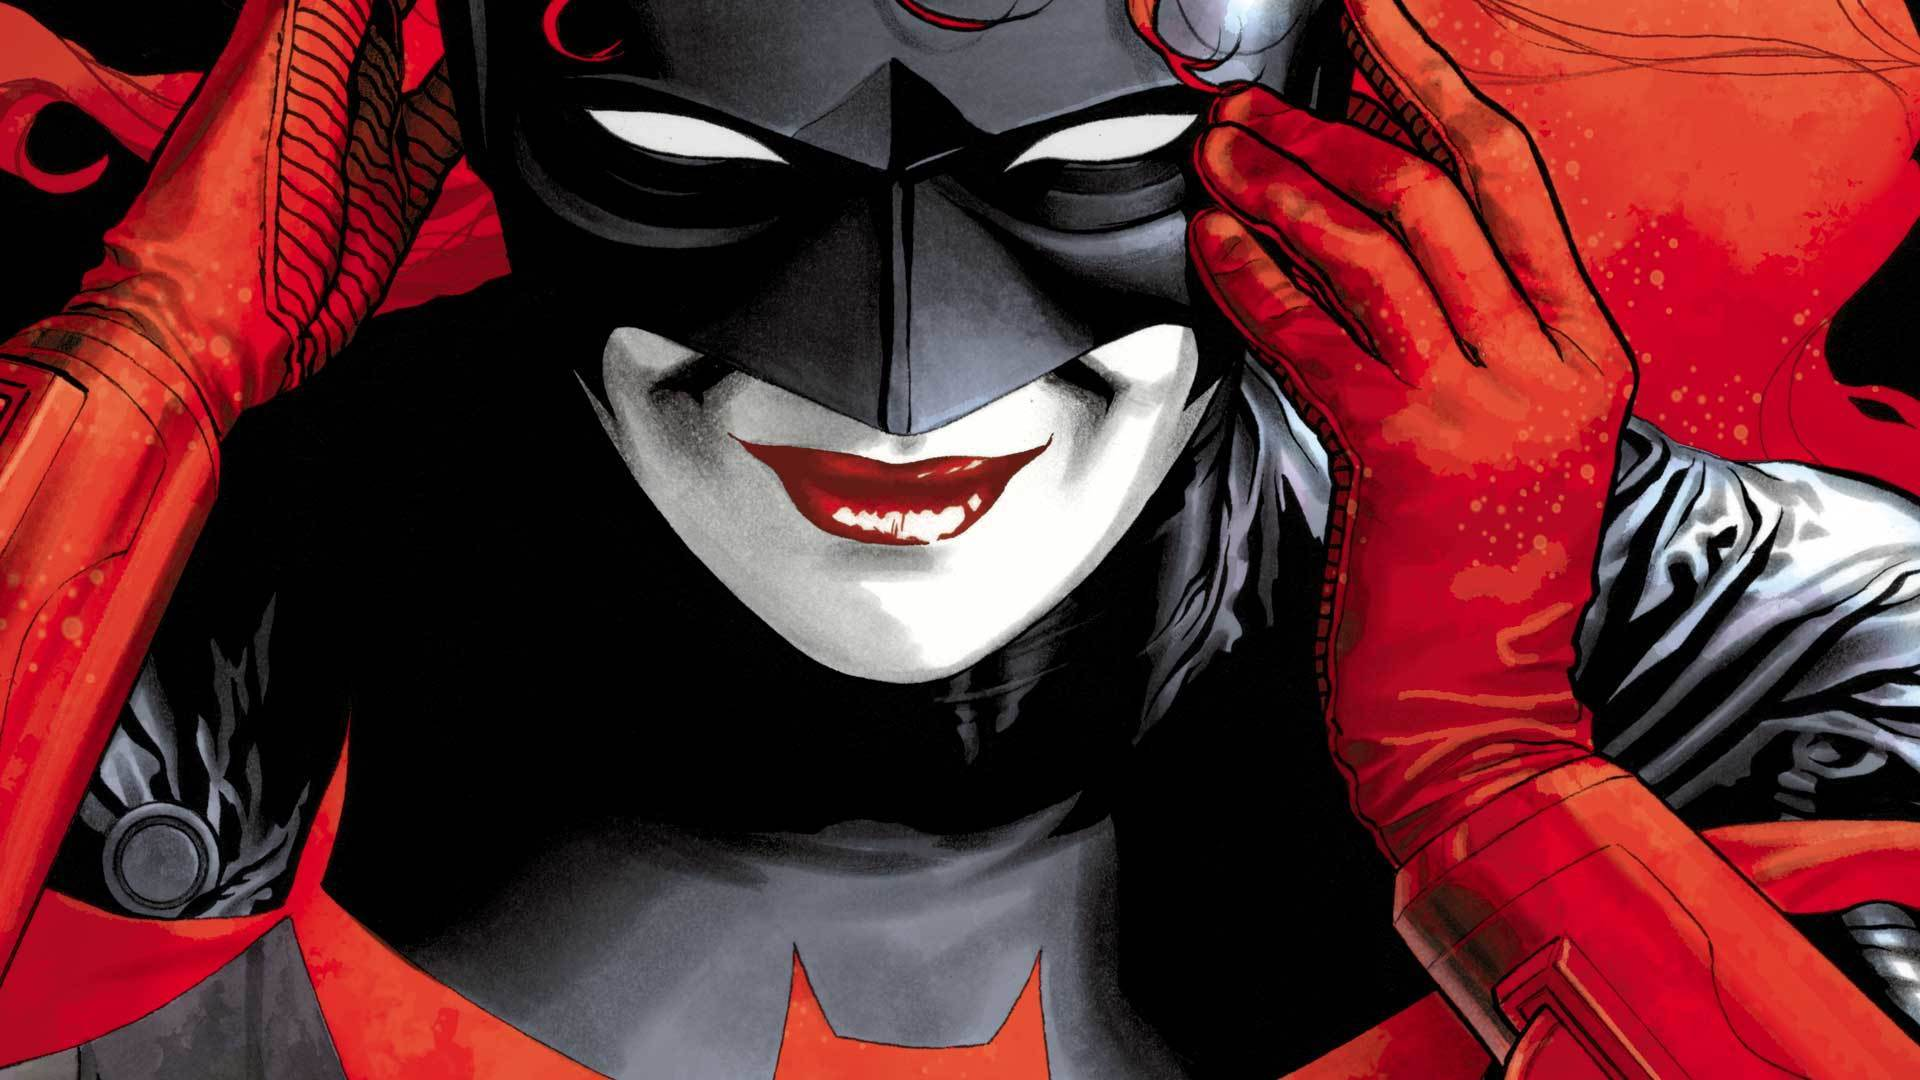 Kate Kane as Batwoman